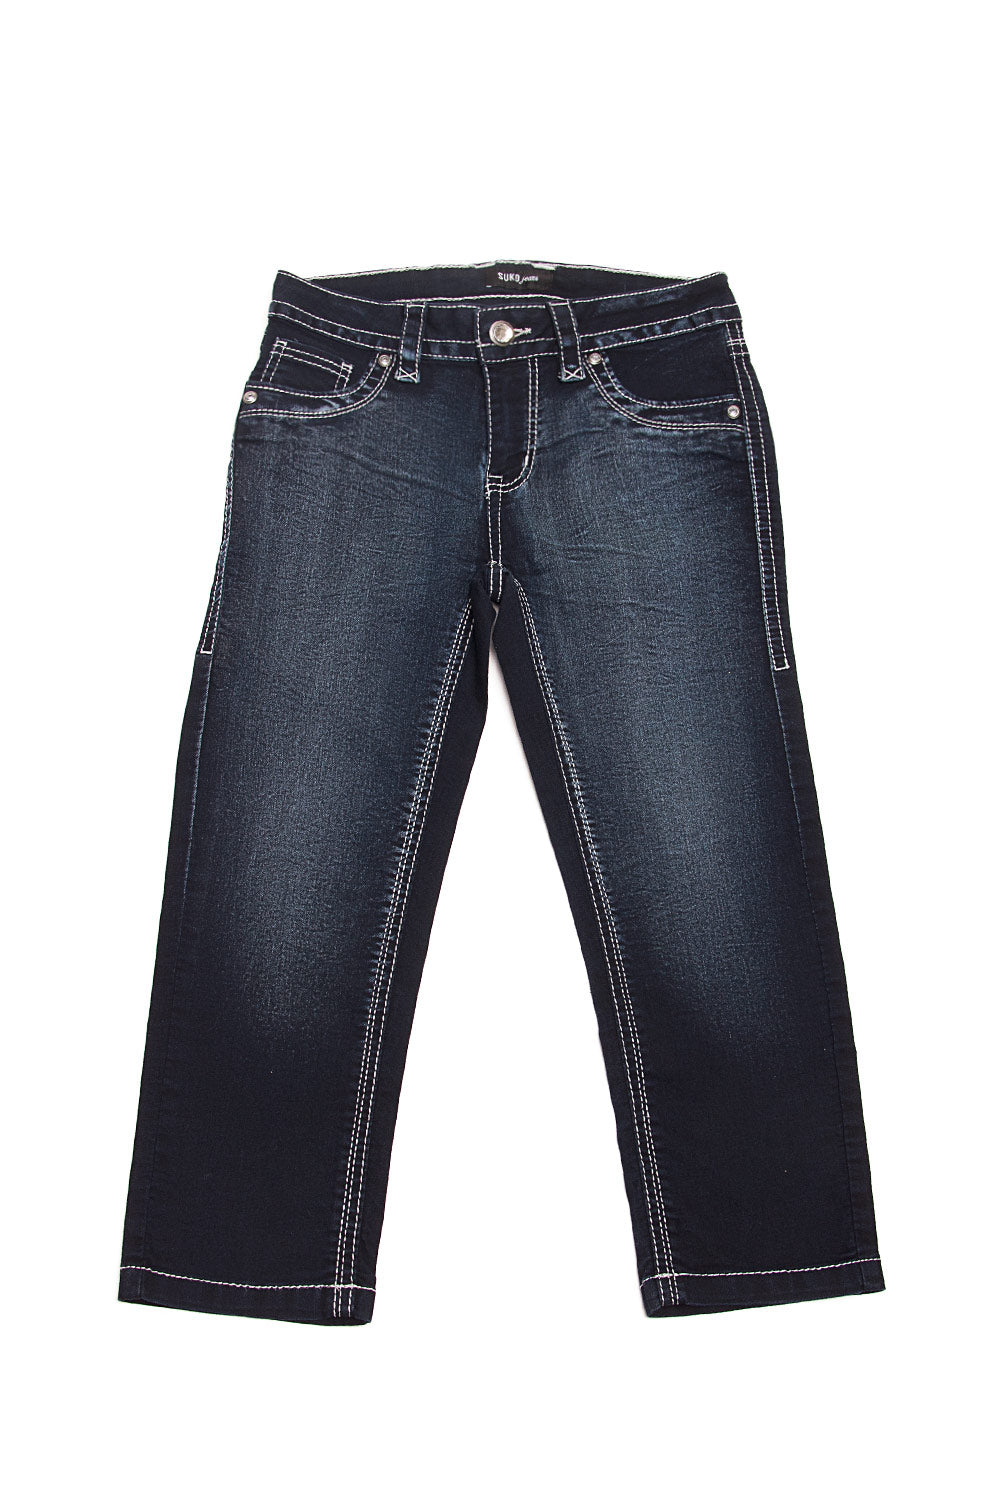 Type 2 Denim Diva Capri Pants